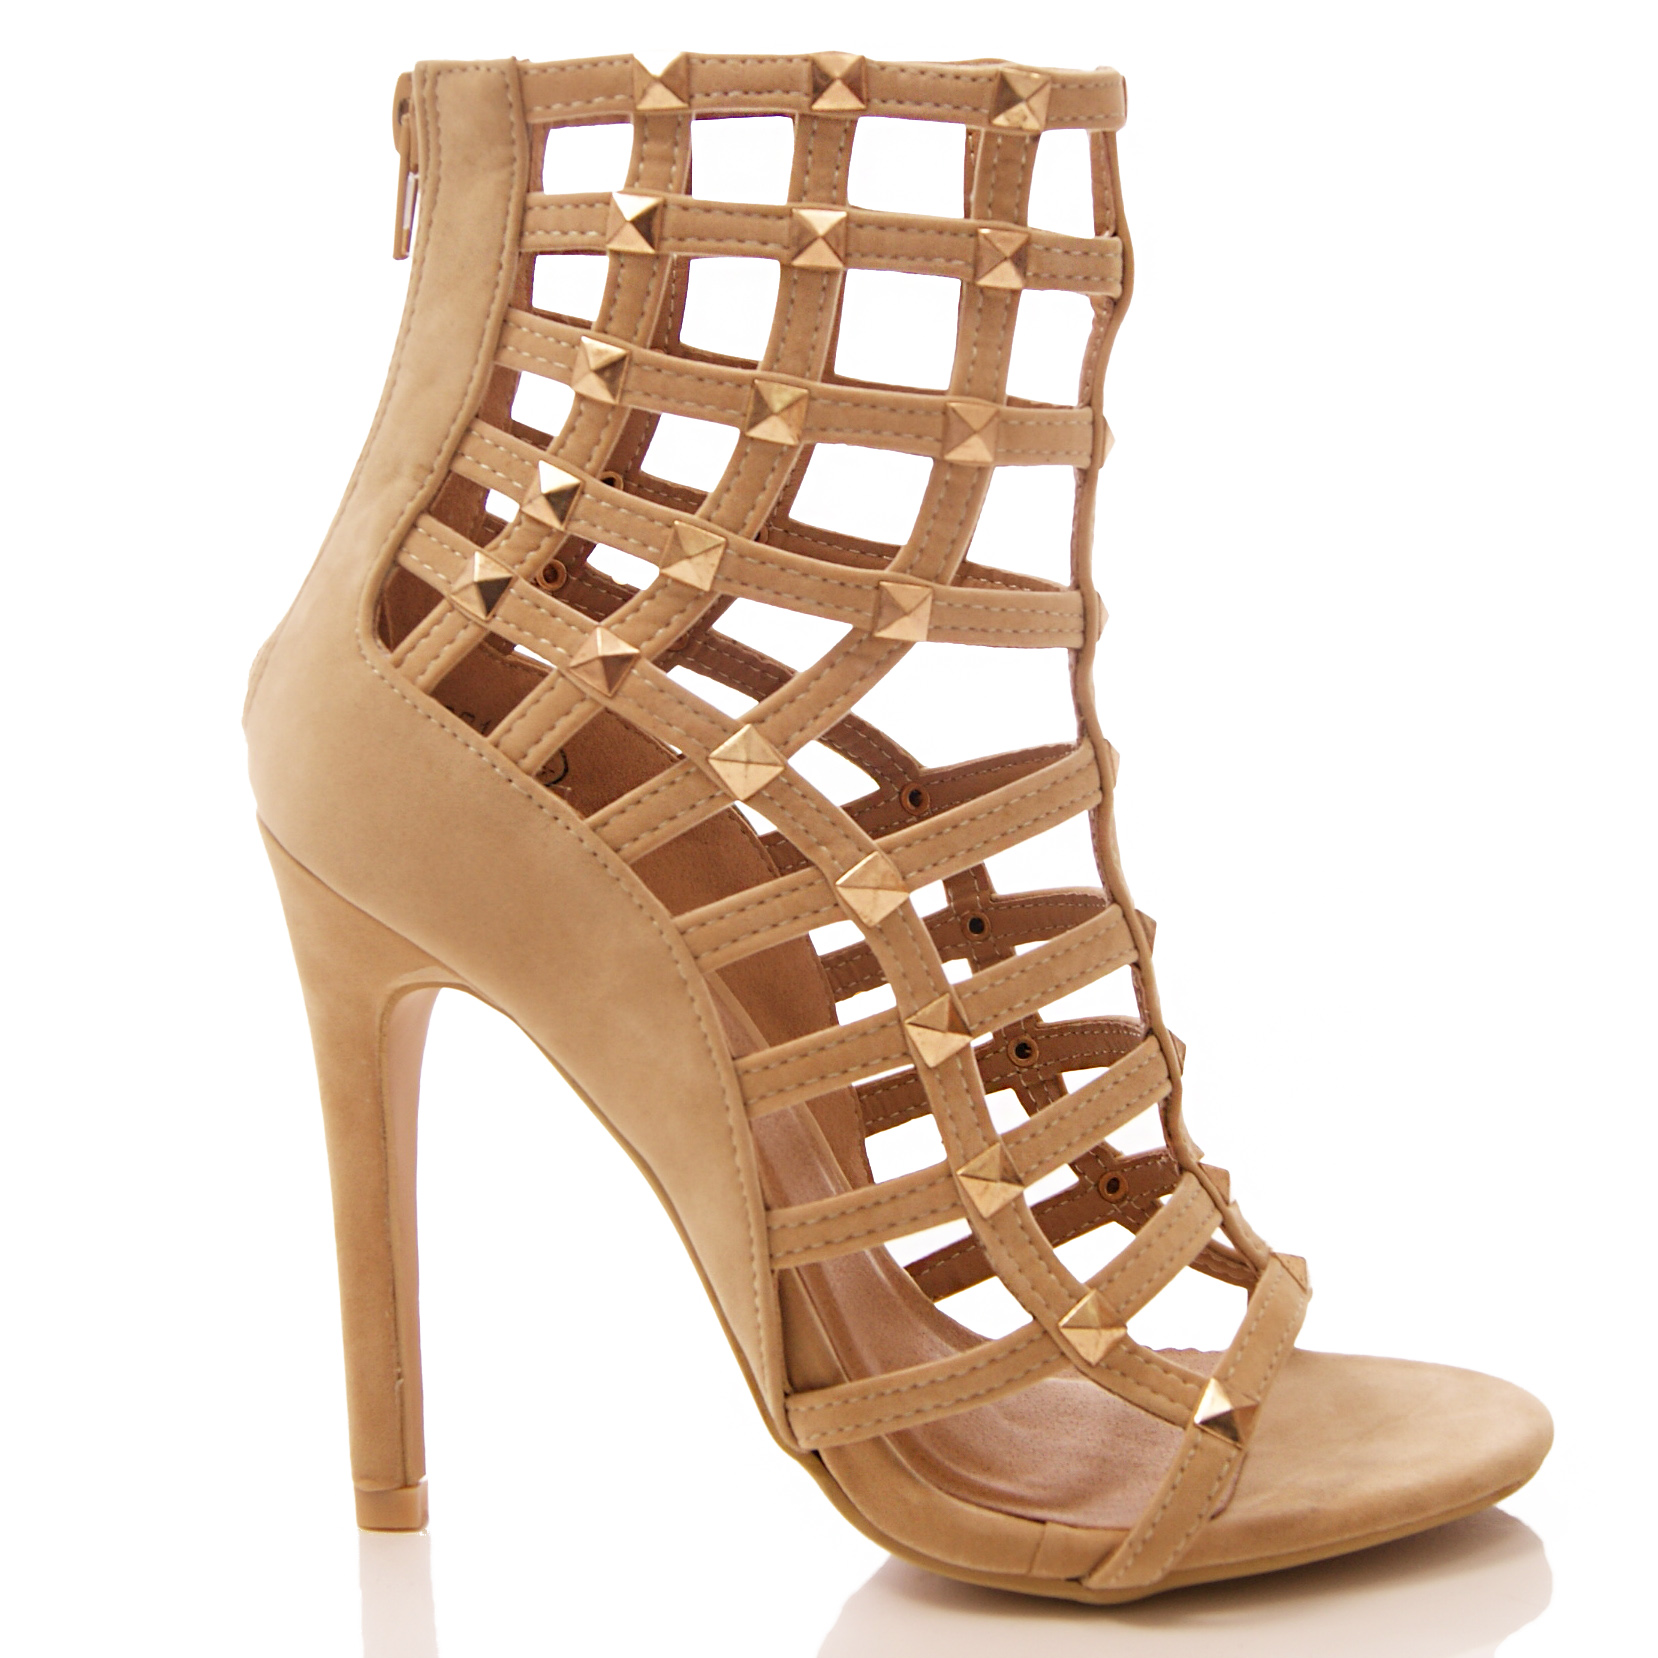 LADIES WOMENS CUT OUT SHOES HIGH HEEL STUD STUDDED CAGED GLADIATOR SANDALS SIZE